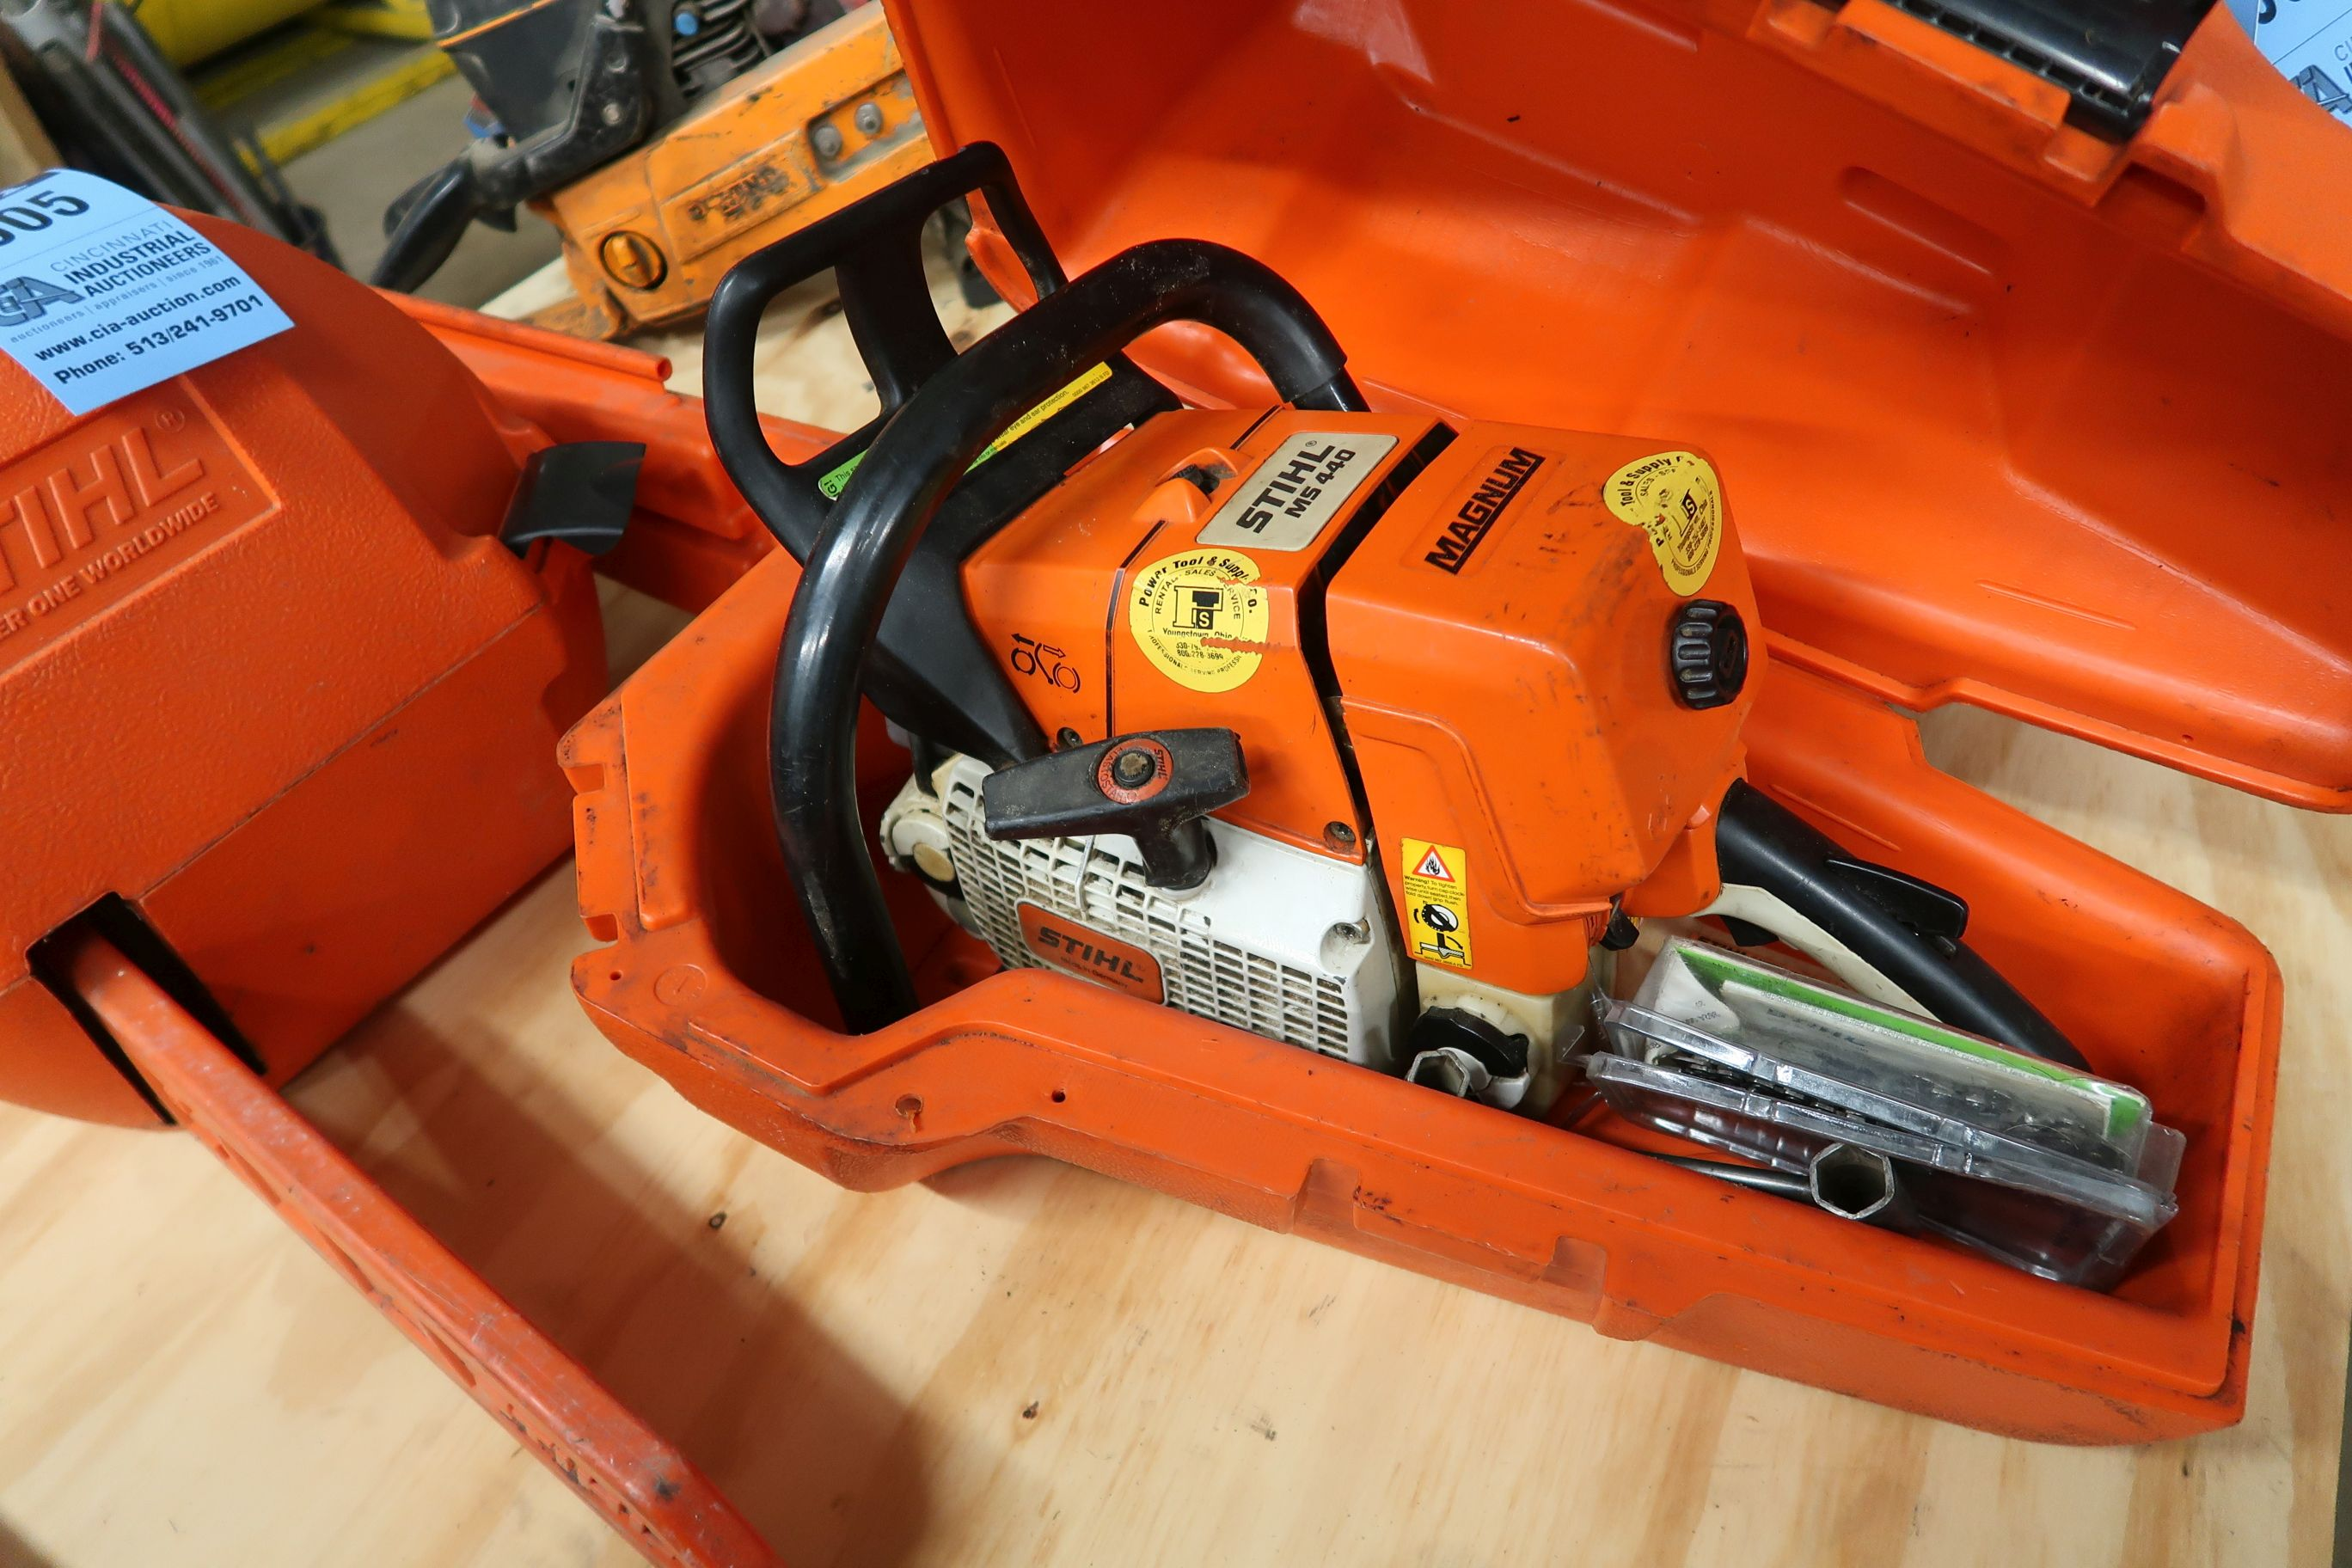 STIHL MS440 GAS POWERED CHAIN SAW